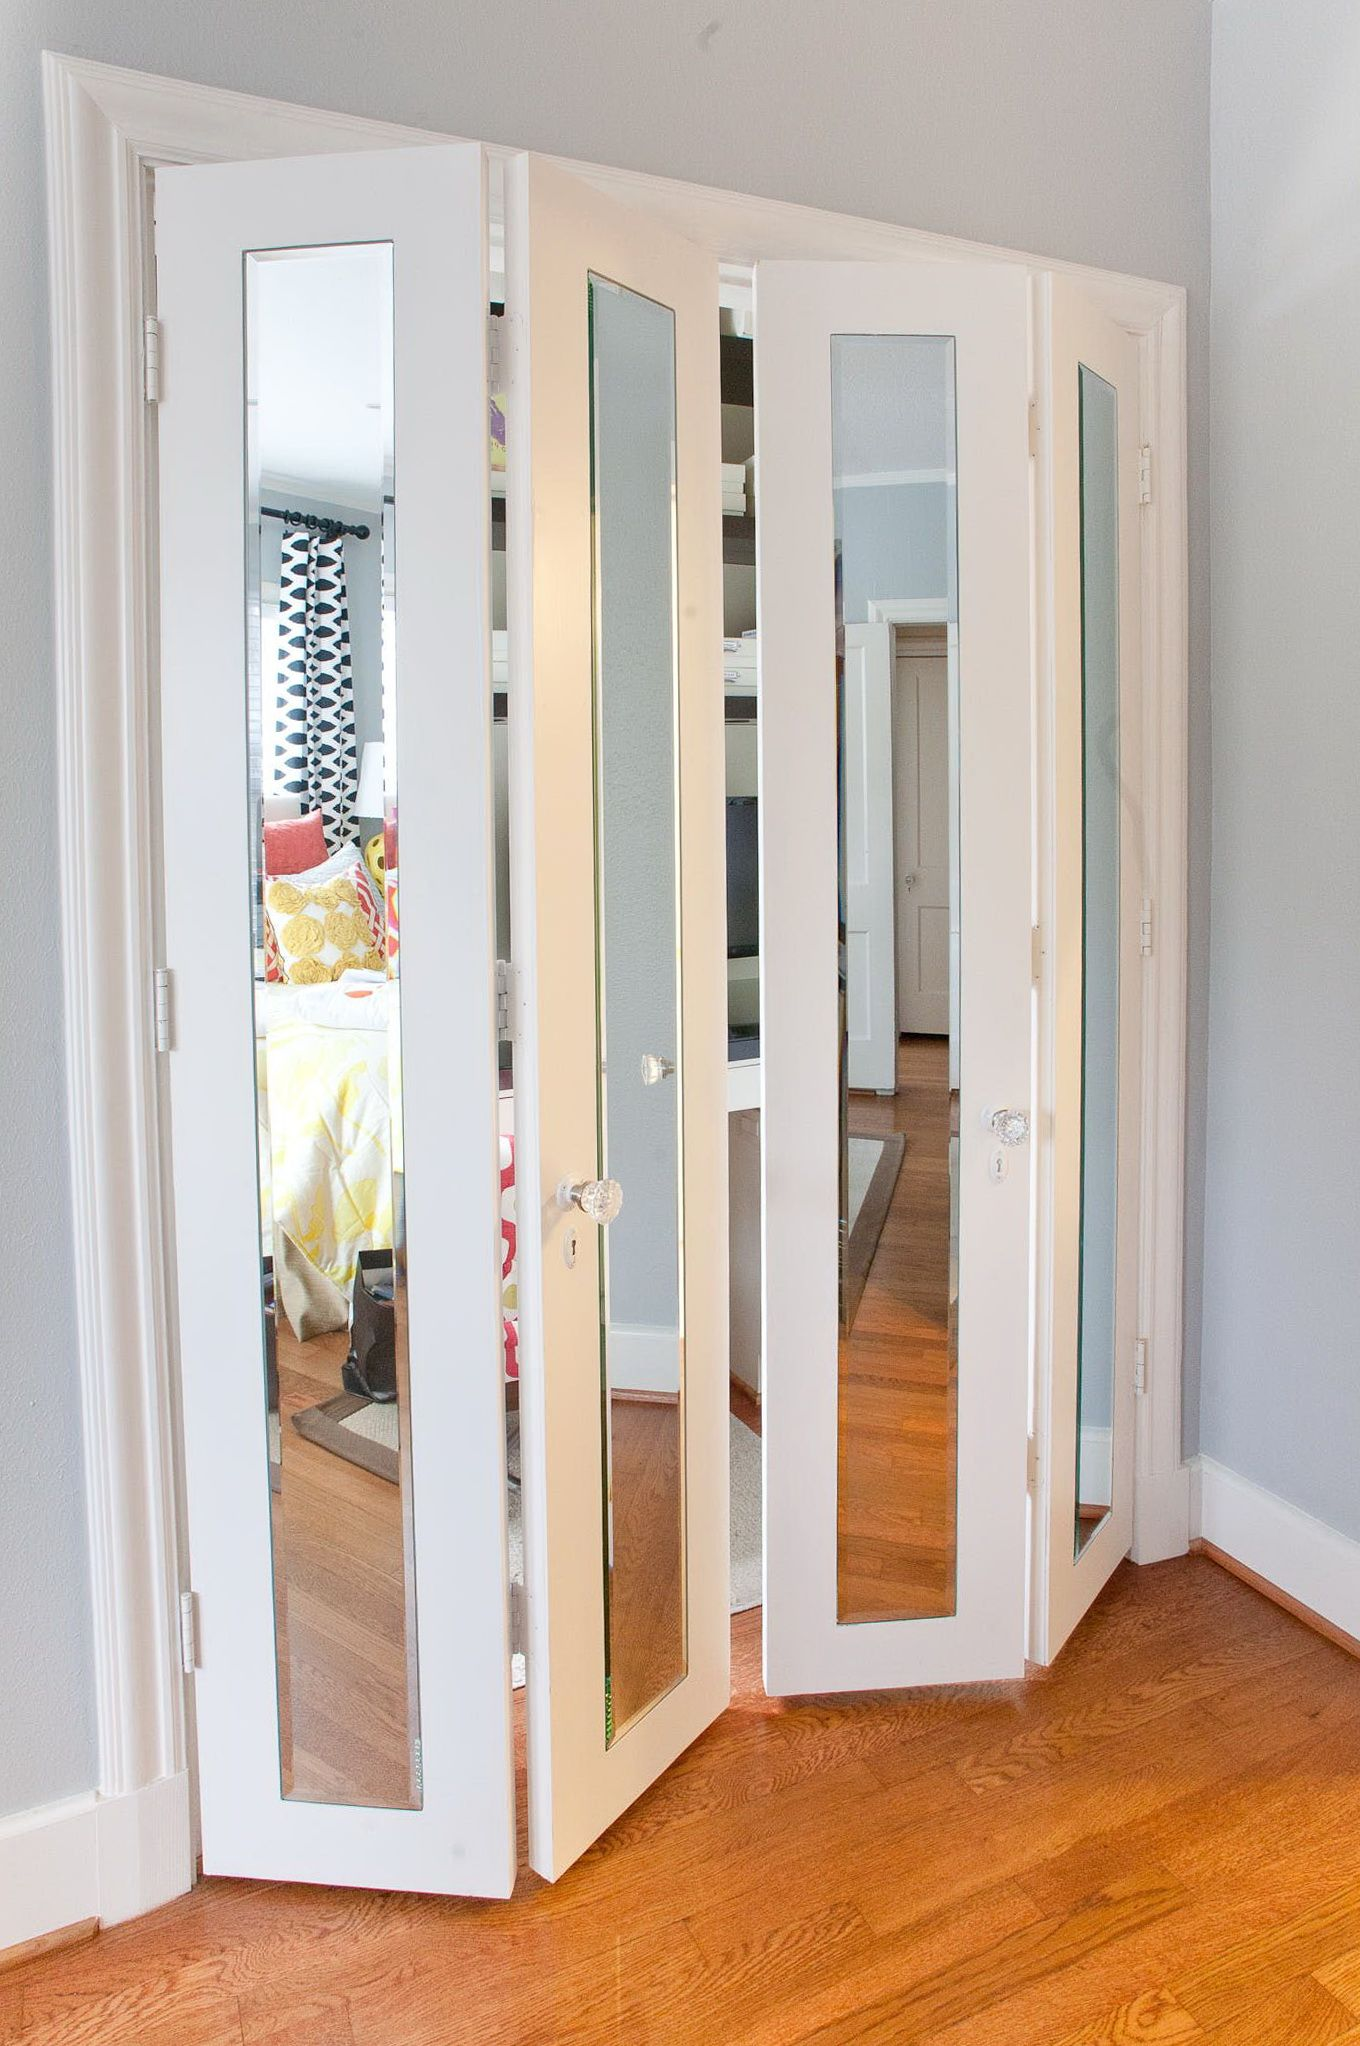 Lowe's Mirrored Bifold Closet Doors